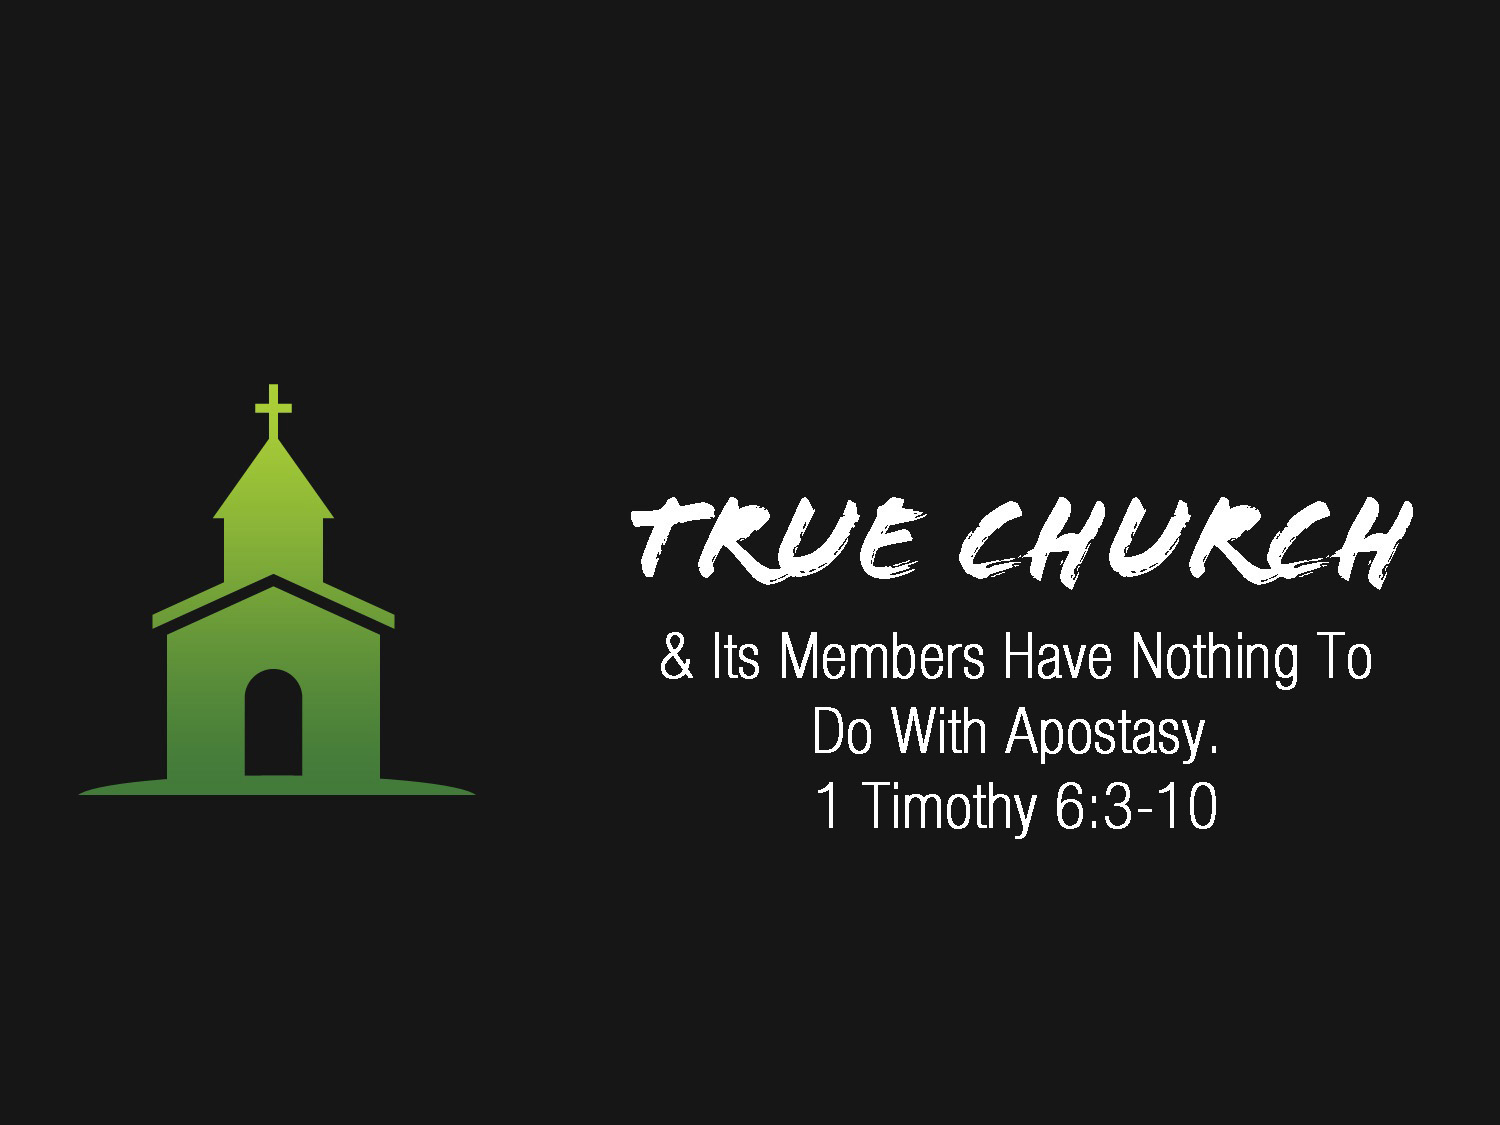 1 Timothy 6v3-10 True Church & Its Members Have Nothing To Do With Apostasy